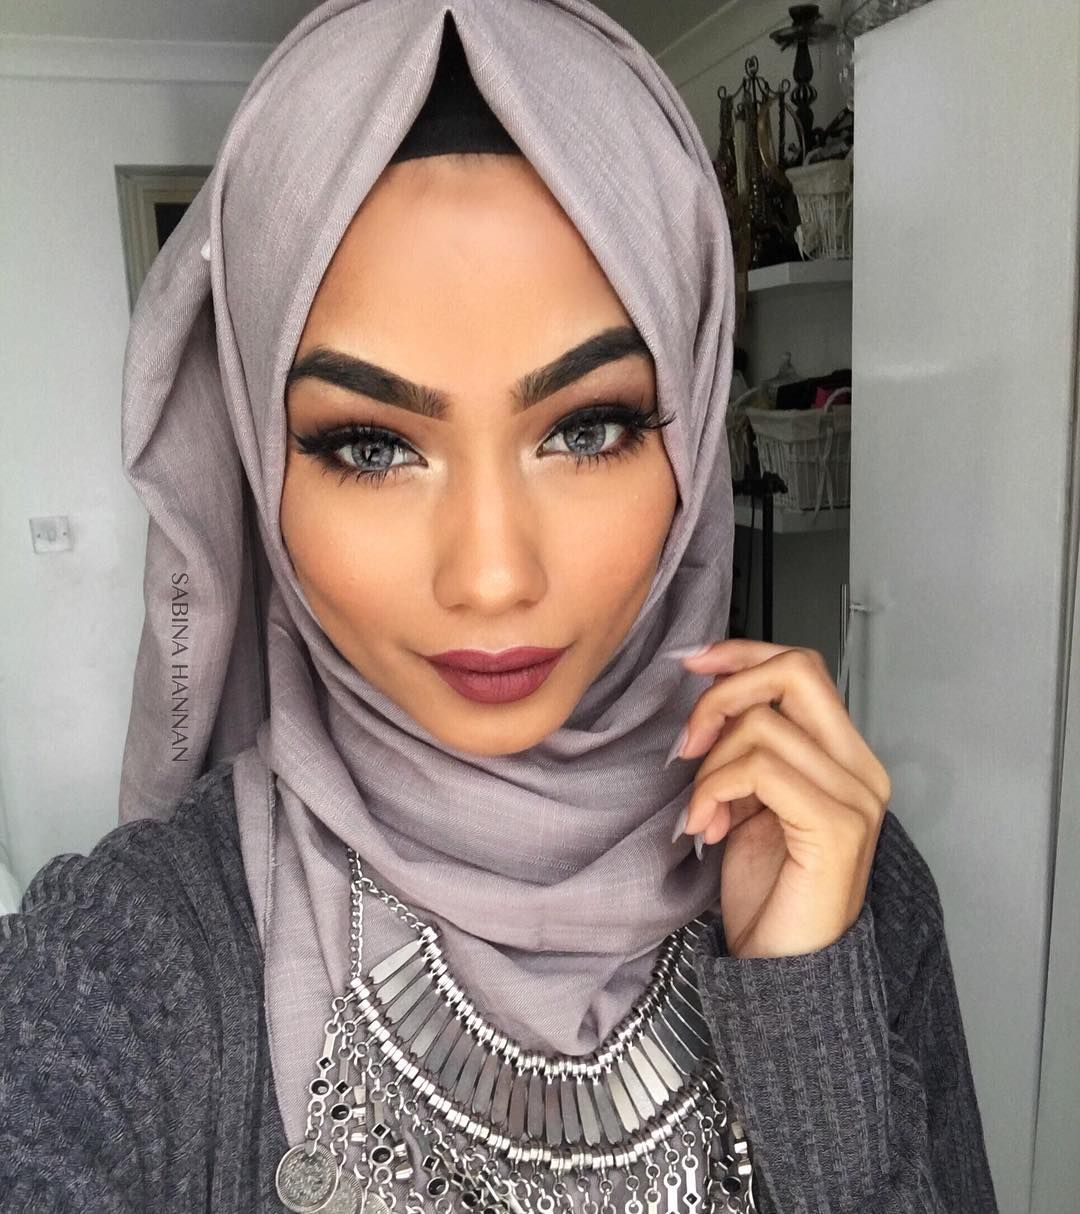 saint hilaire muslim women dating site 41, saint hilaire black women in minnesota, united states looking for a: man aged 34 to 45 love is comingintelligent, professional, independent, honest, and caring.